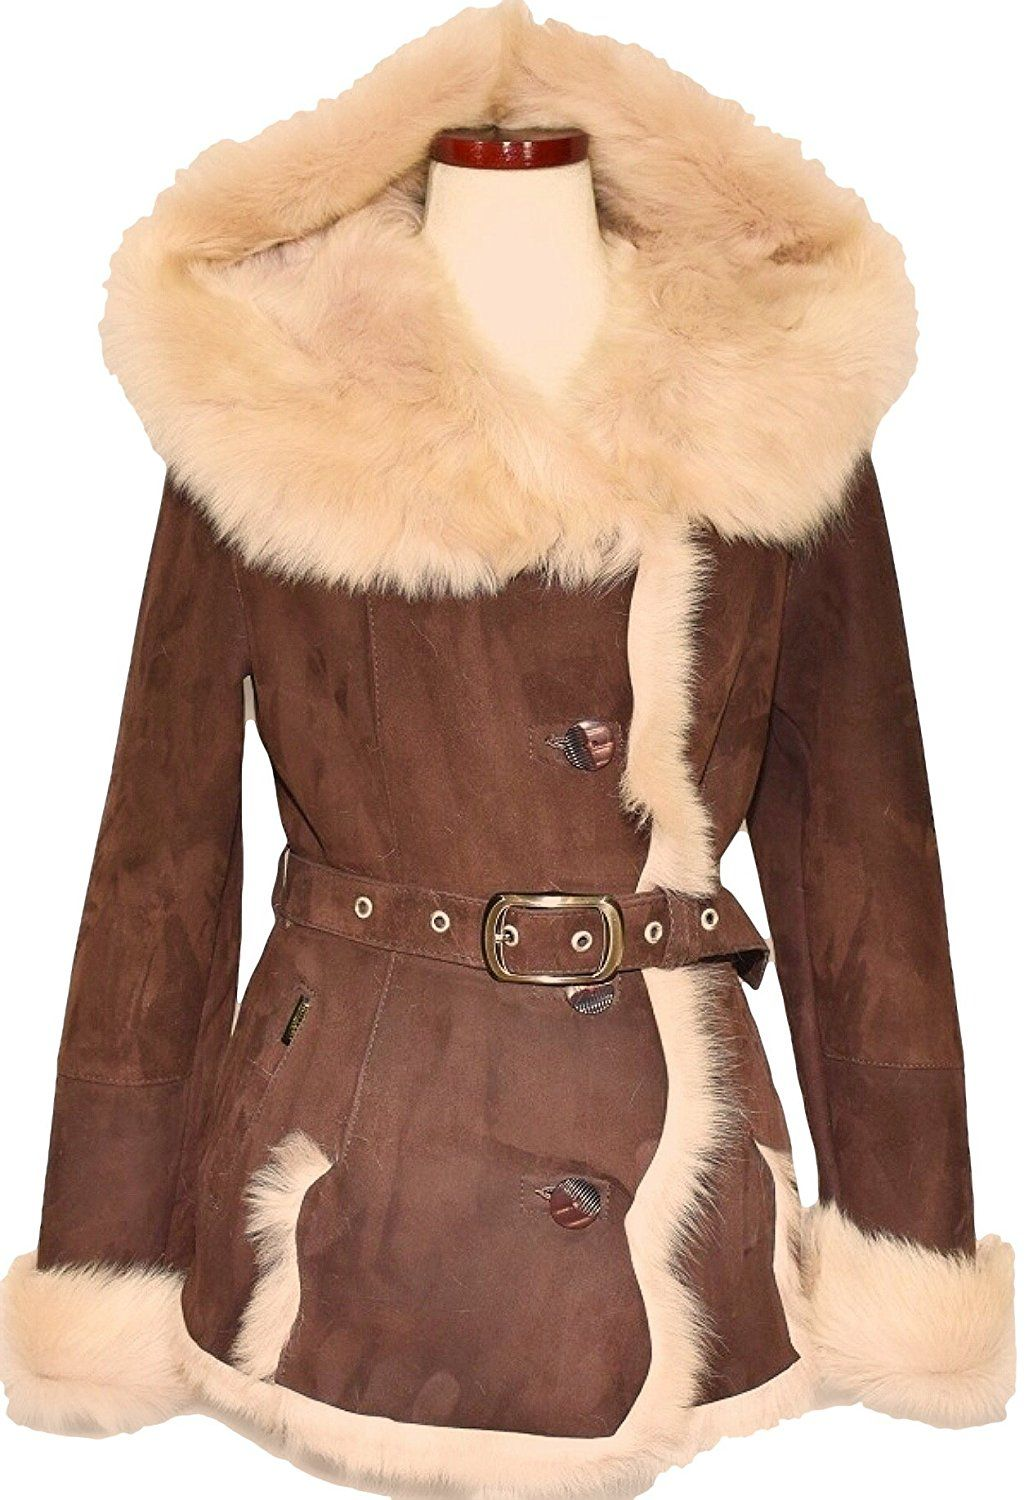 Dudex Women'S Suede Sheepskin Lambskin Leather Jacket